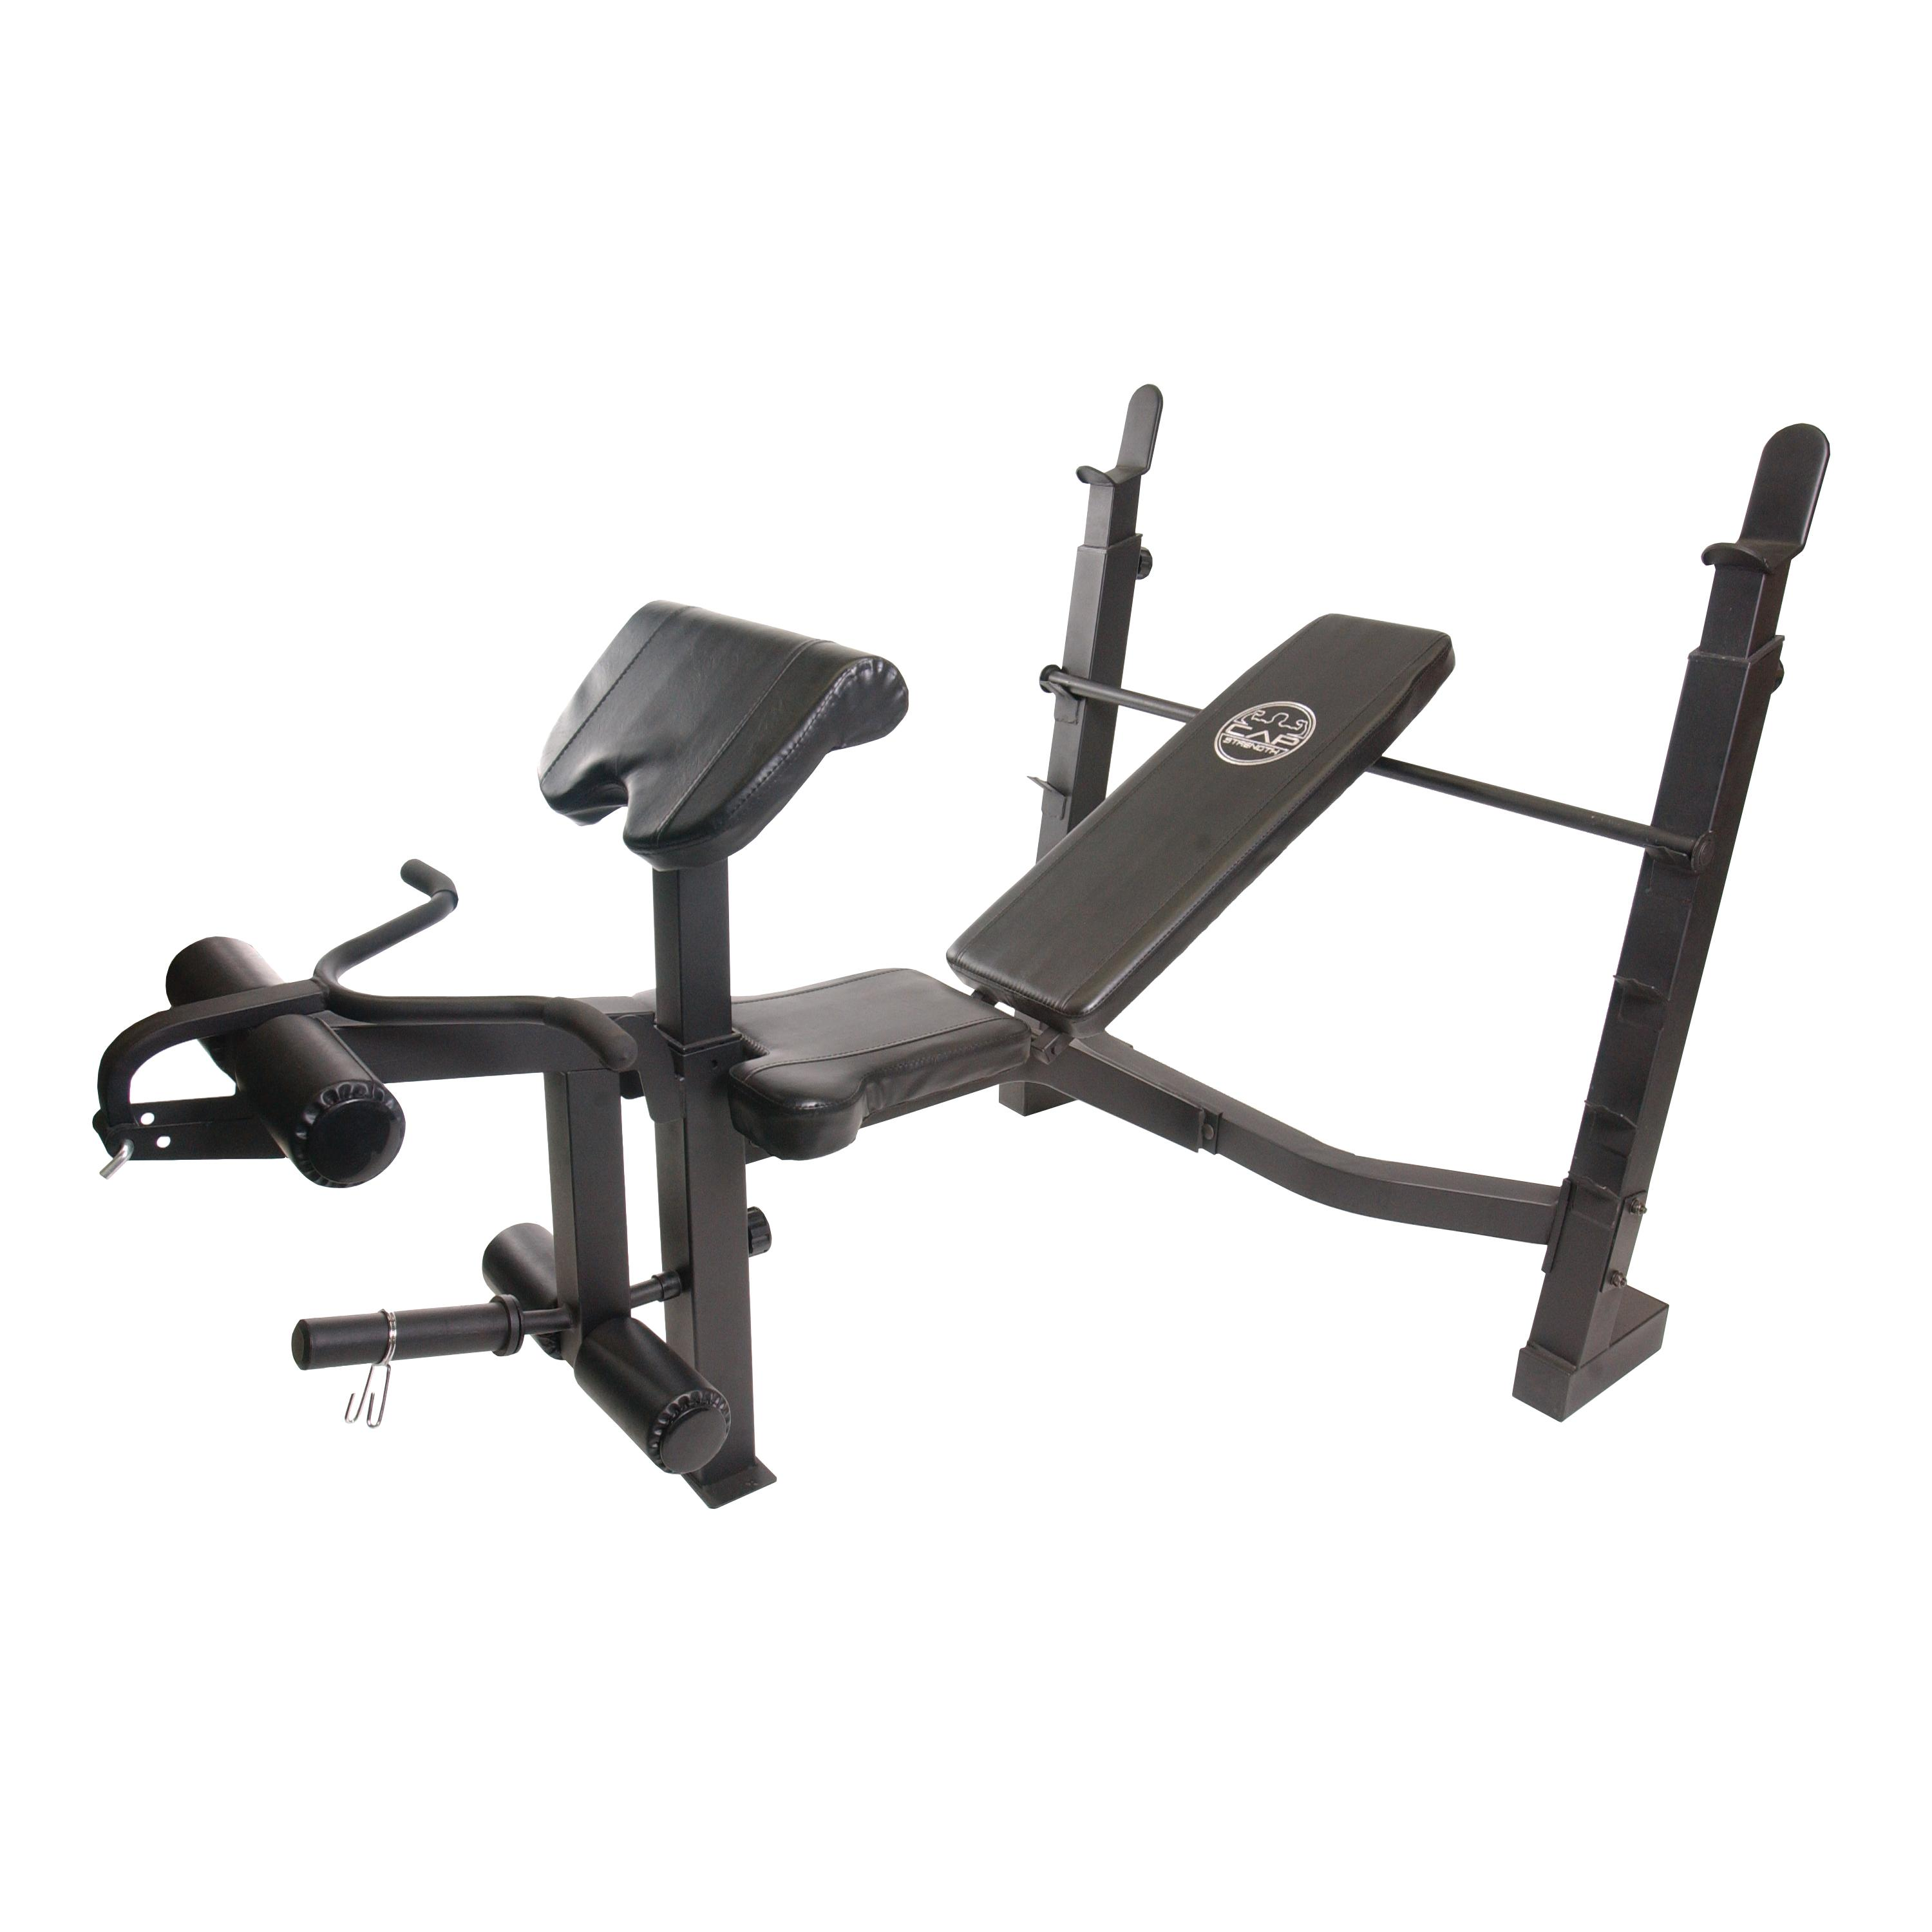 Cap Barbell Olympic Size Advanced Weight Bench 13293964 Overstock Com Shopping The Best